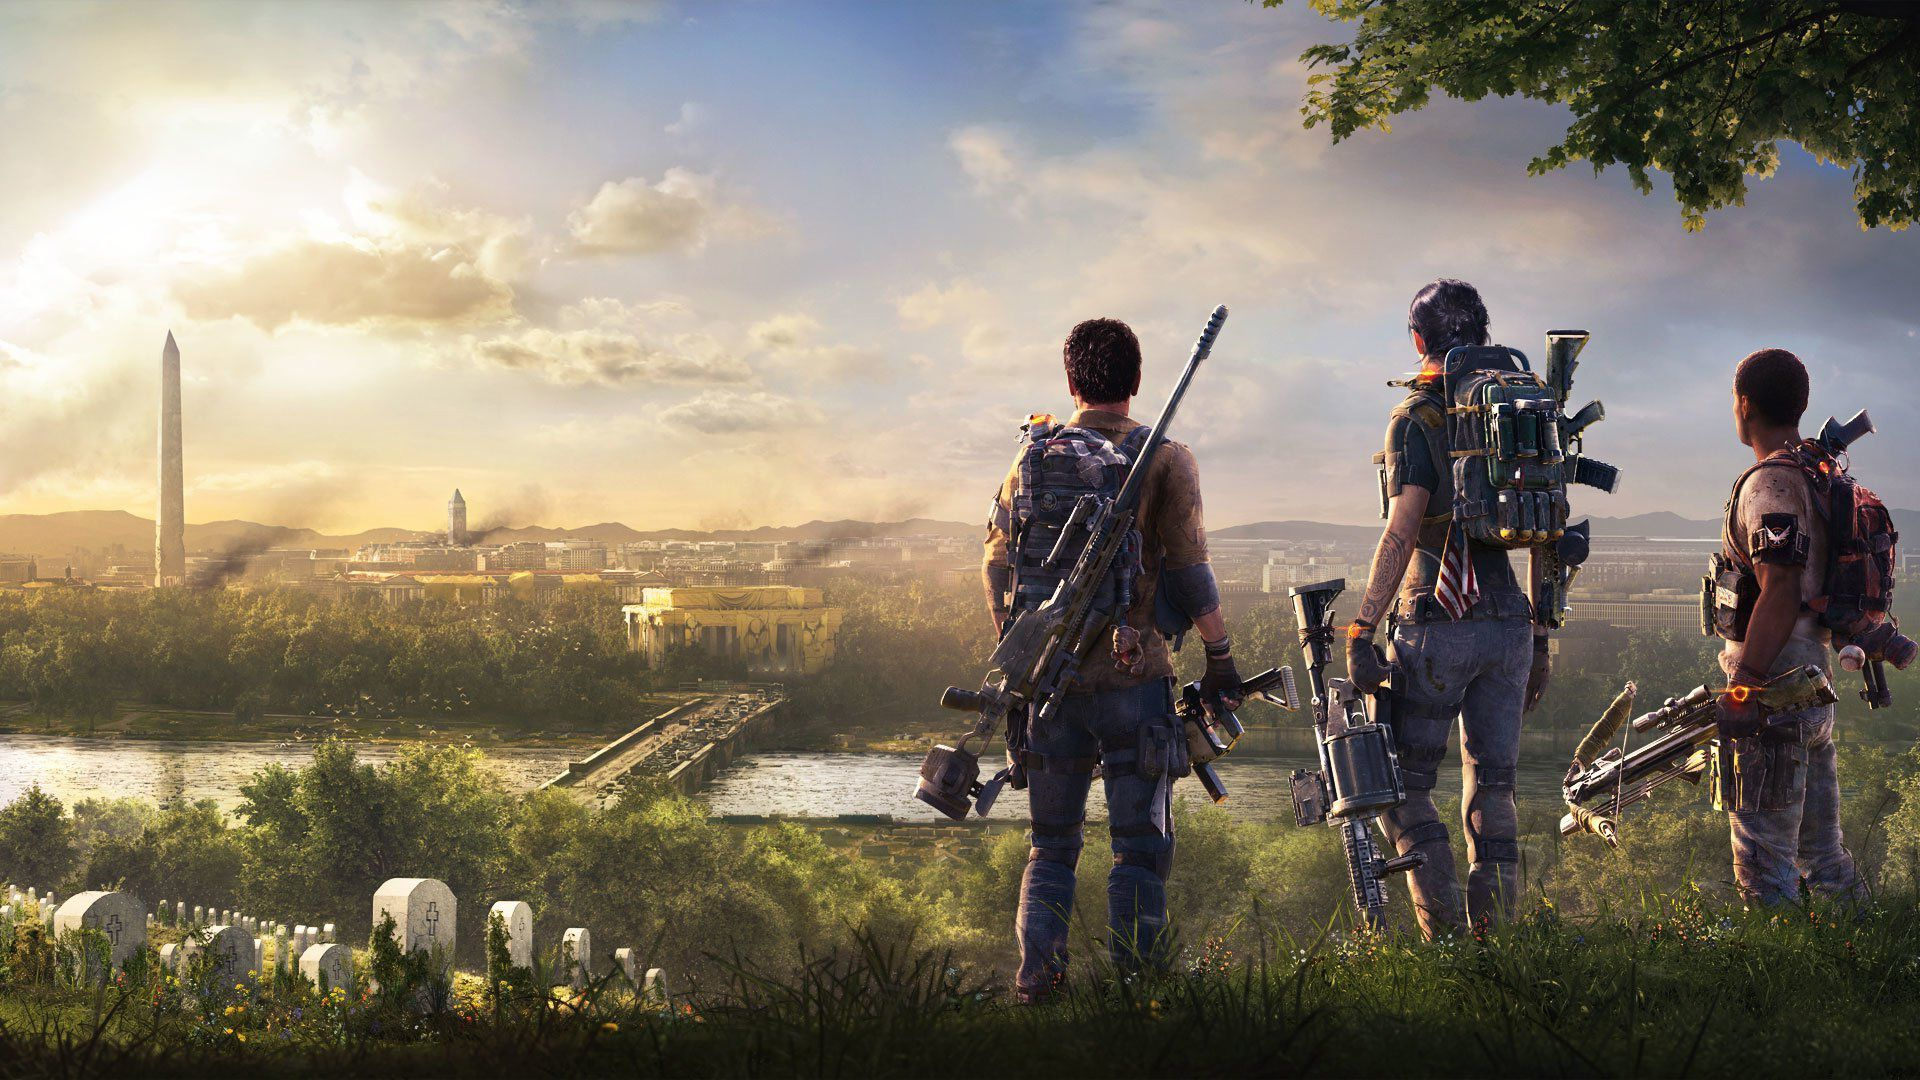 Tom Clancy's the Division 2 Wallpapers - Top Free Tom ...